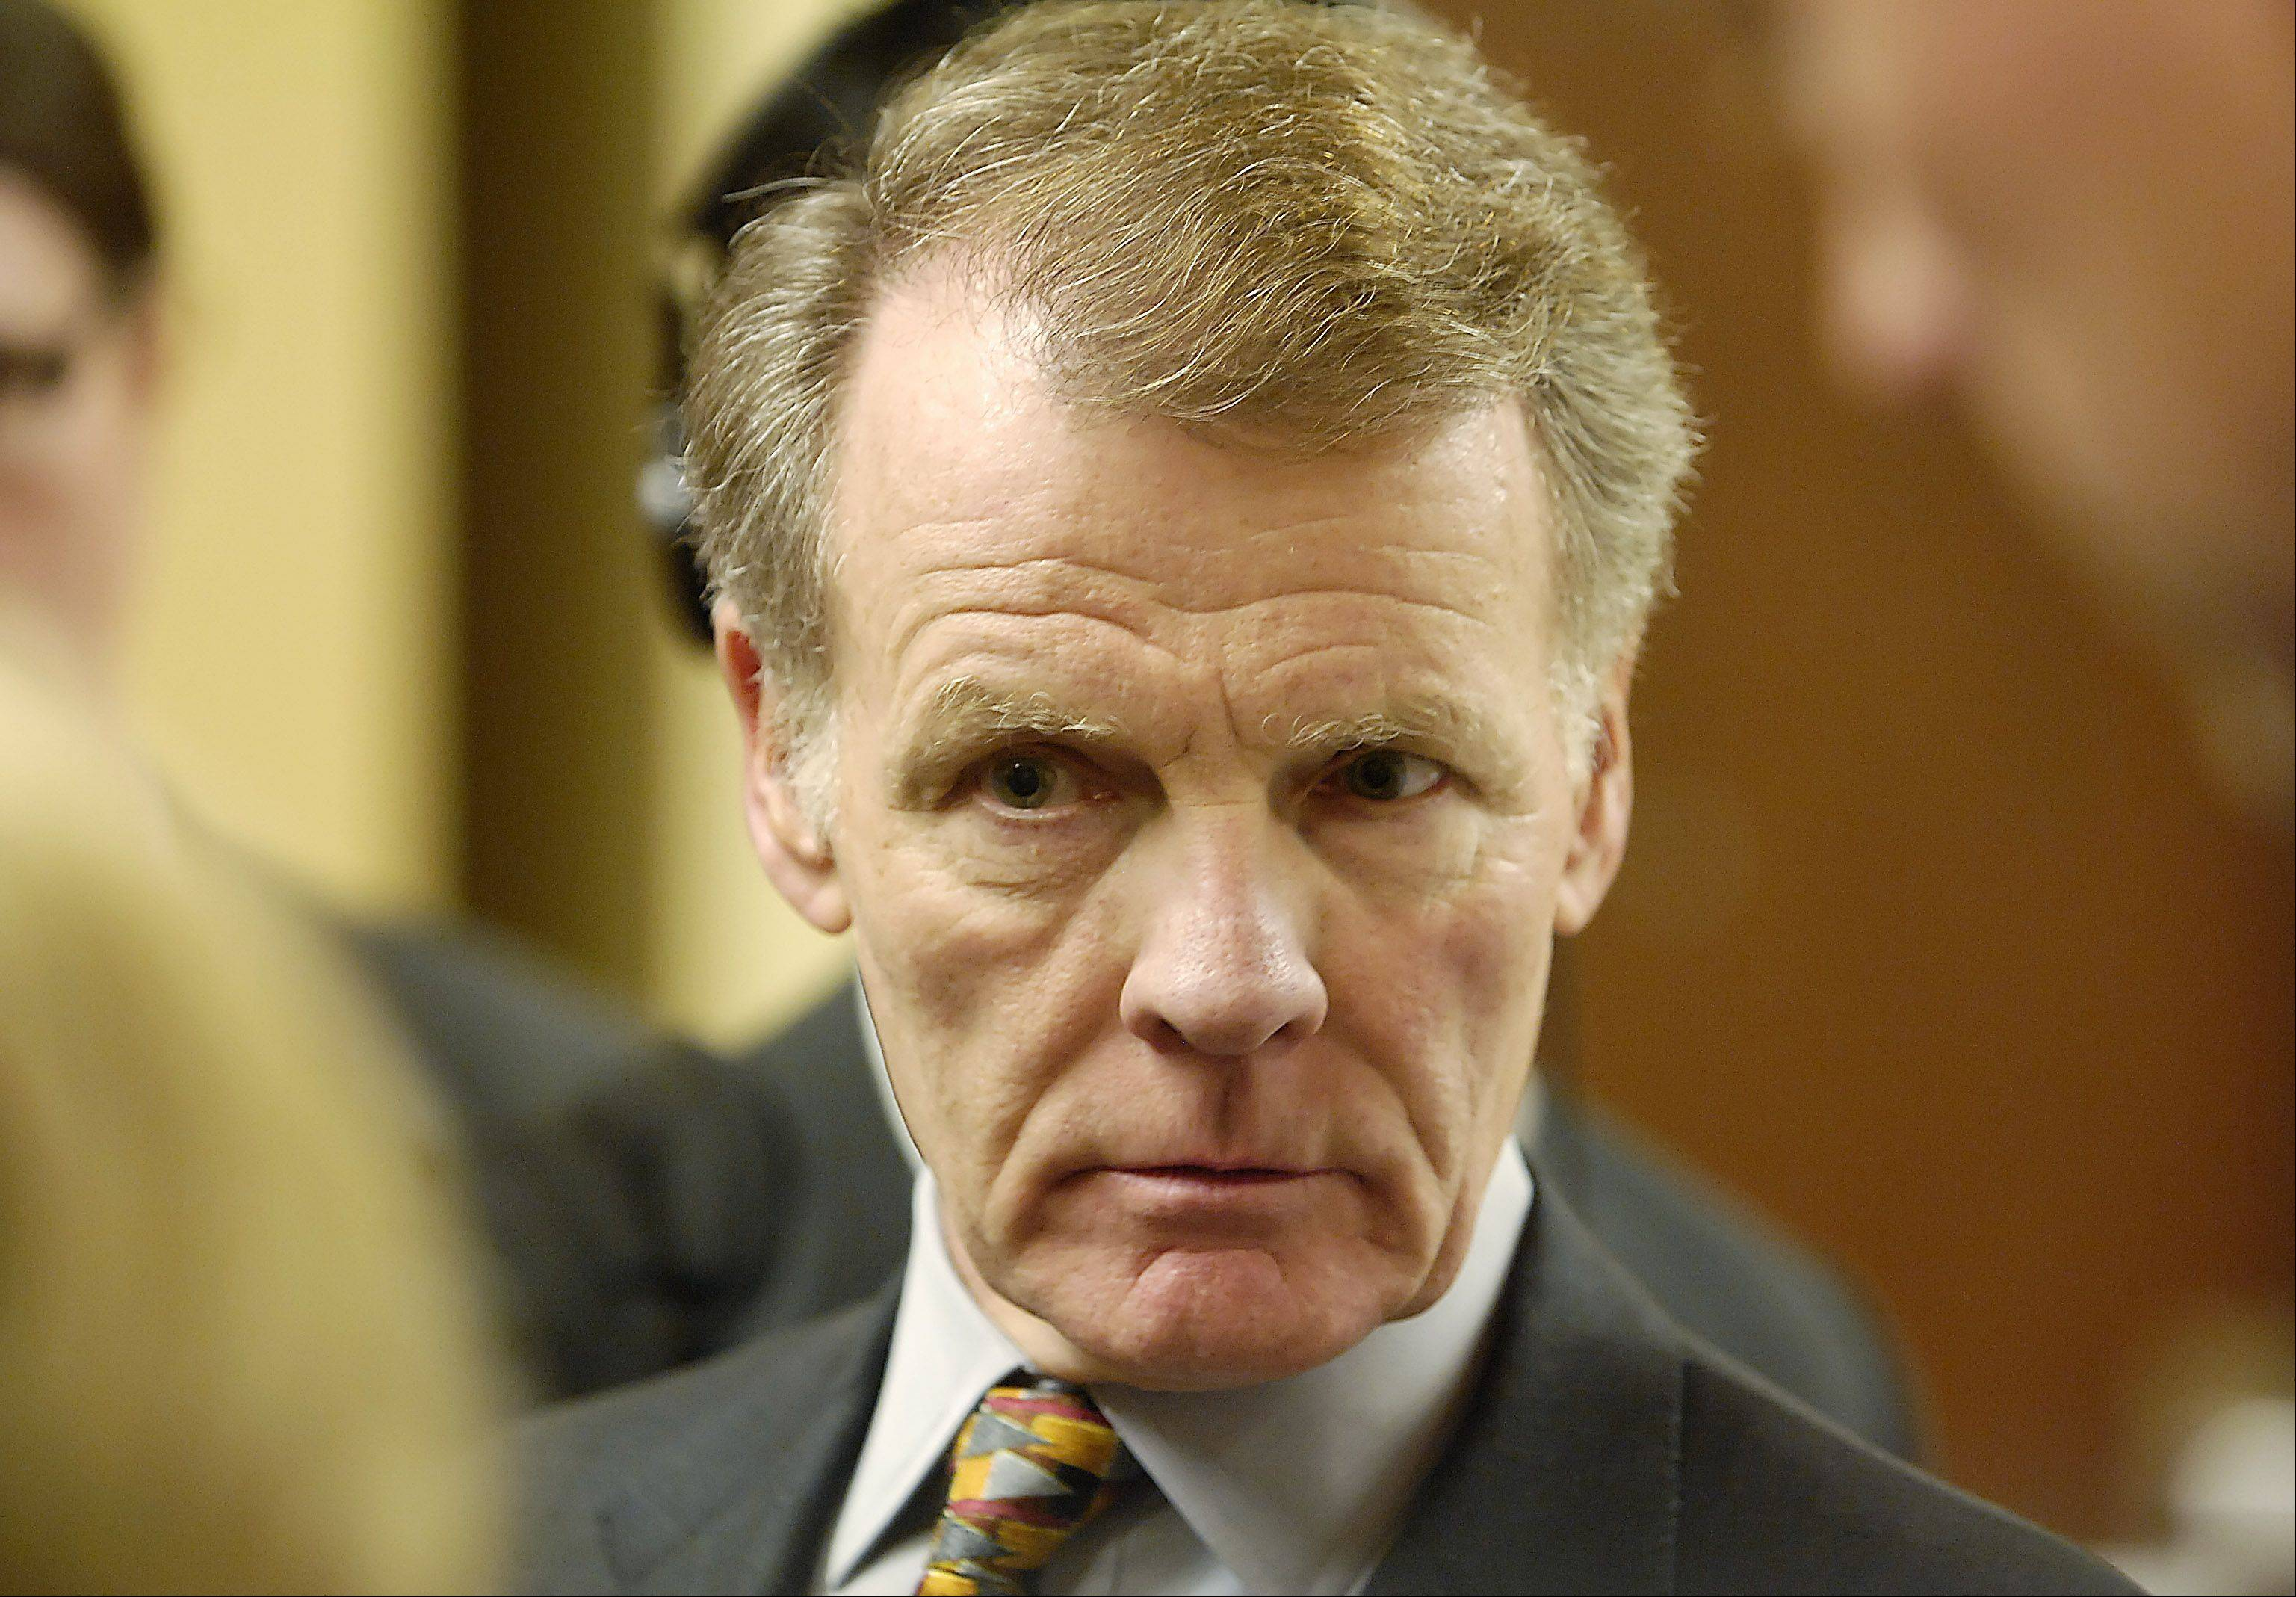 After years of inaction and debate, lawmakers will consider two plans to address the pension crisis, including one from House Speaker Michael Madigan requiring public employees to pay more, reduce annual cost-of-living increases and increase the retirement age for some workers.